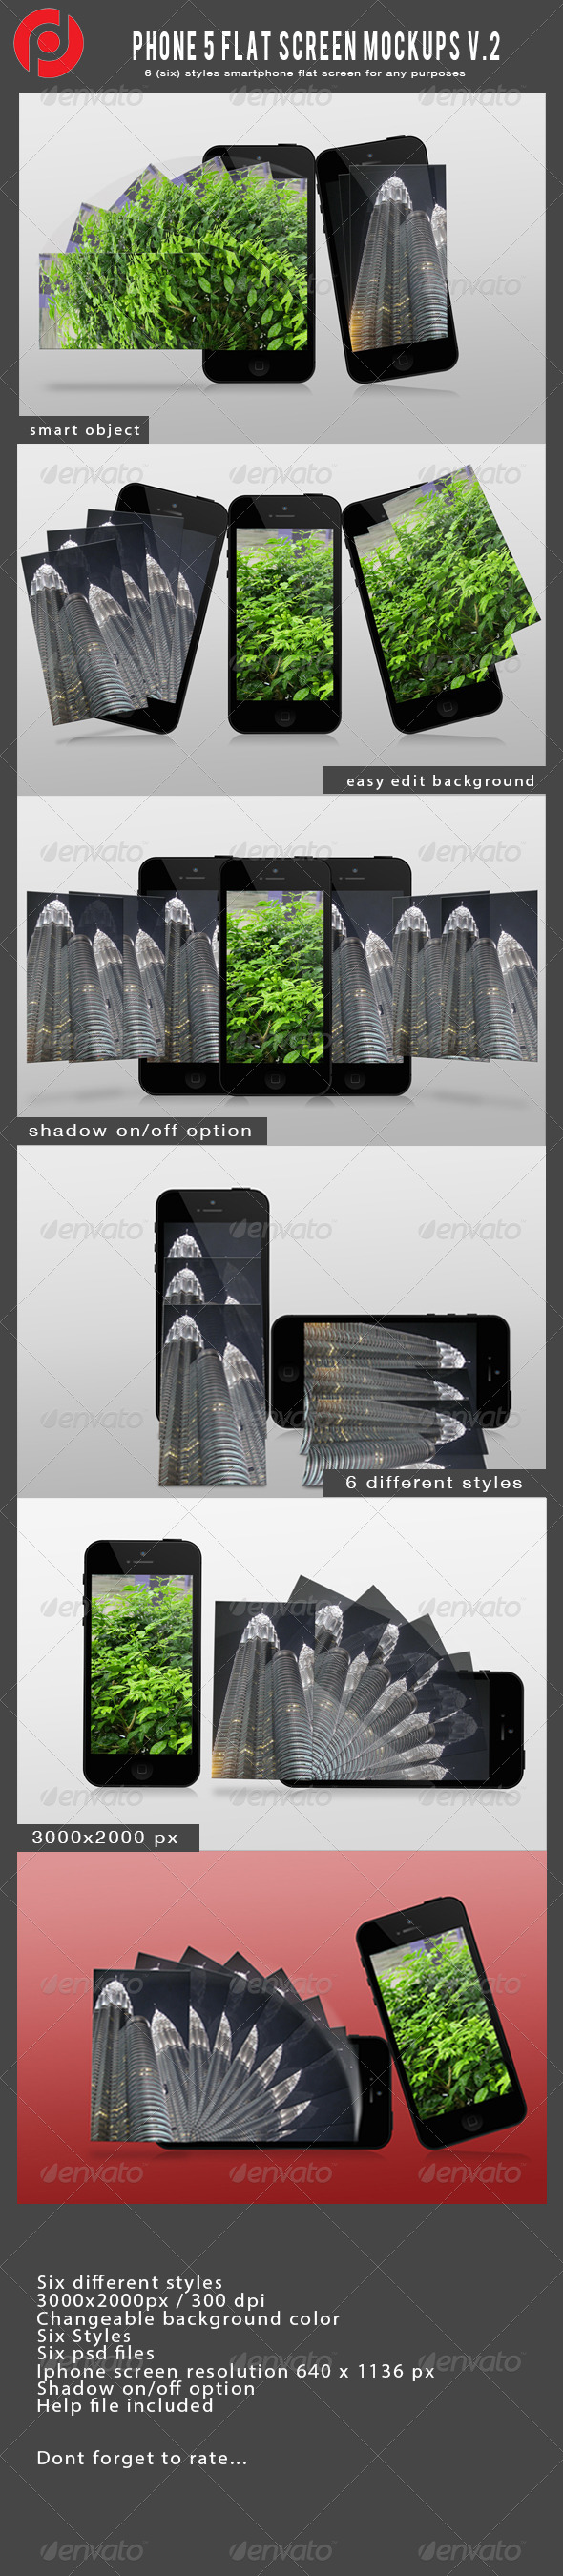 GraphicRiver Phone 5 flat screen mockups 5502210